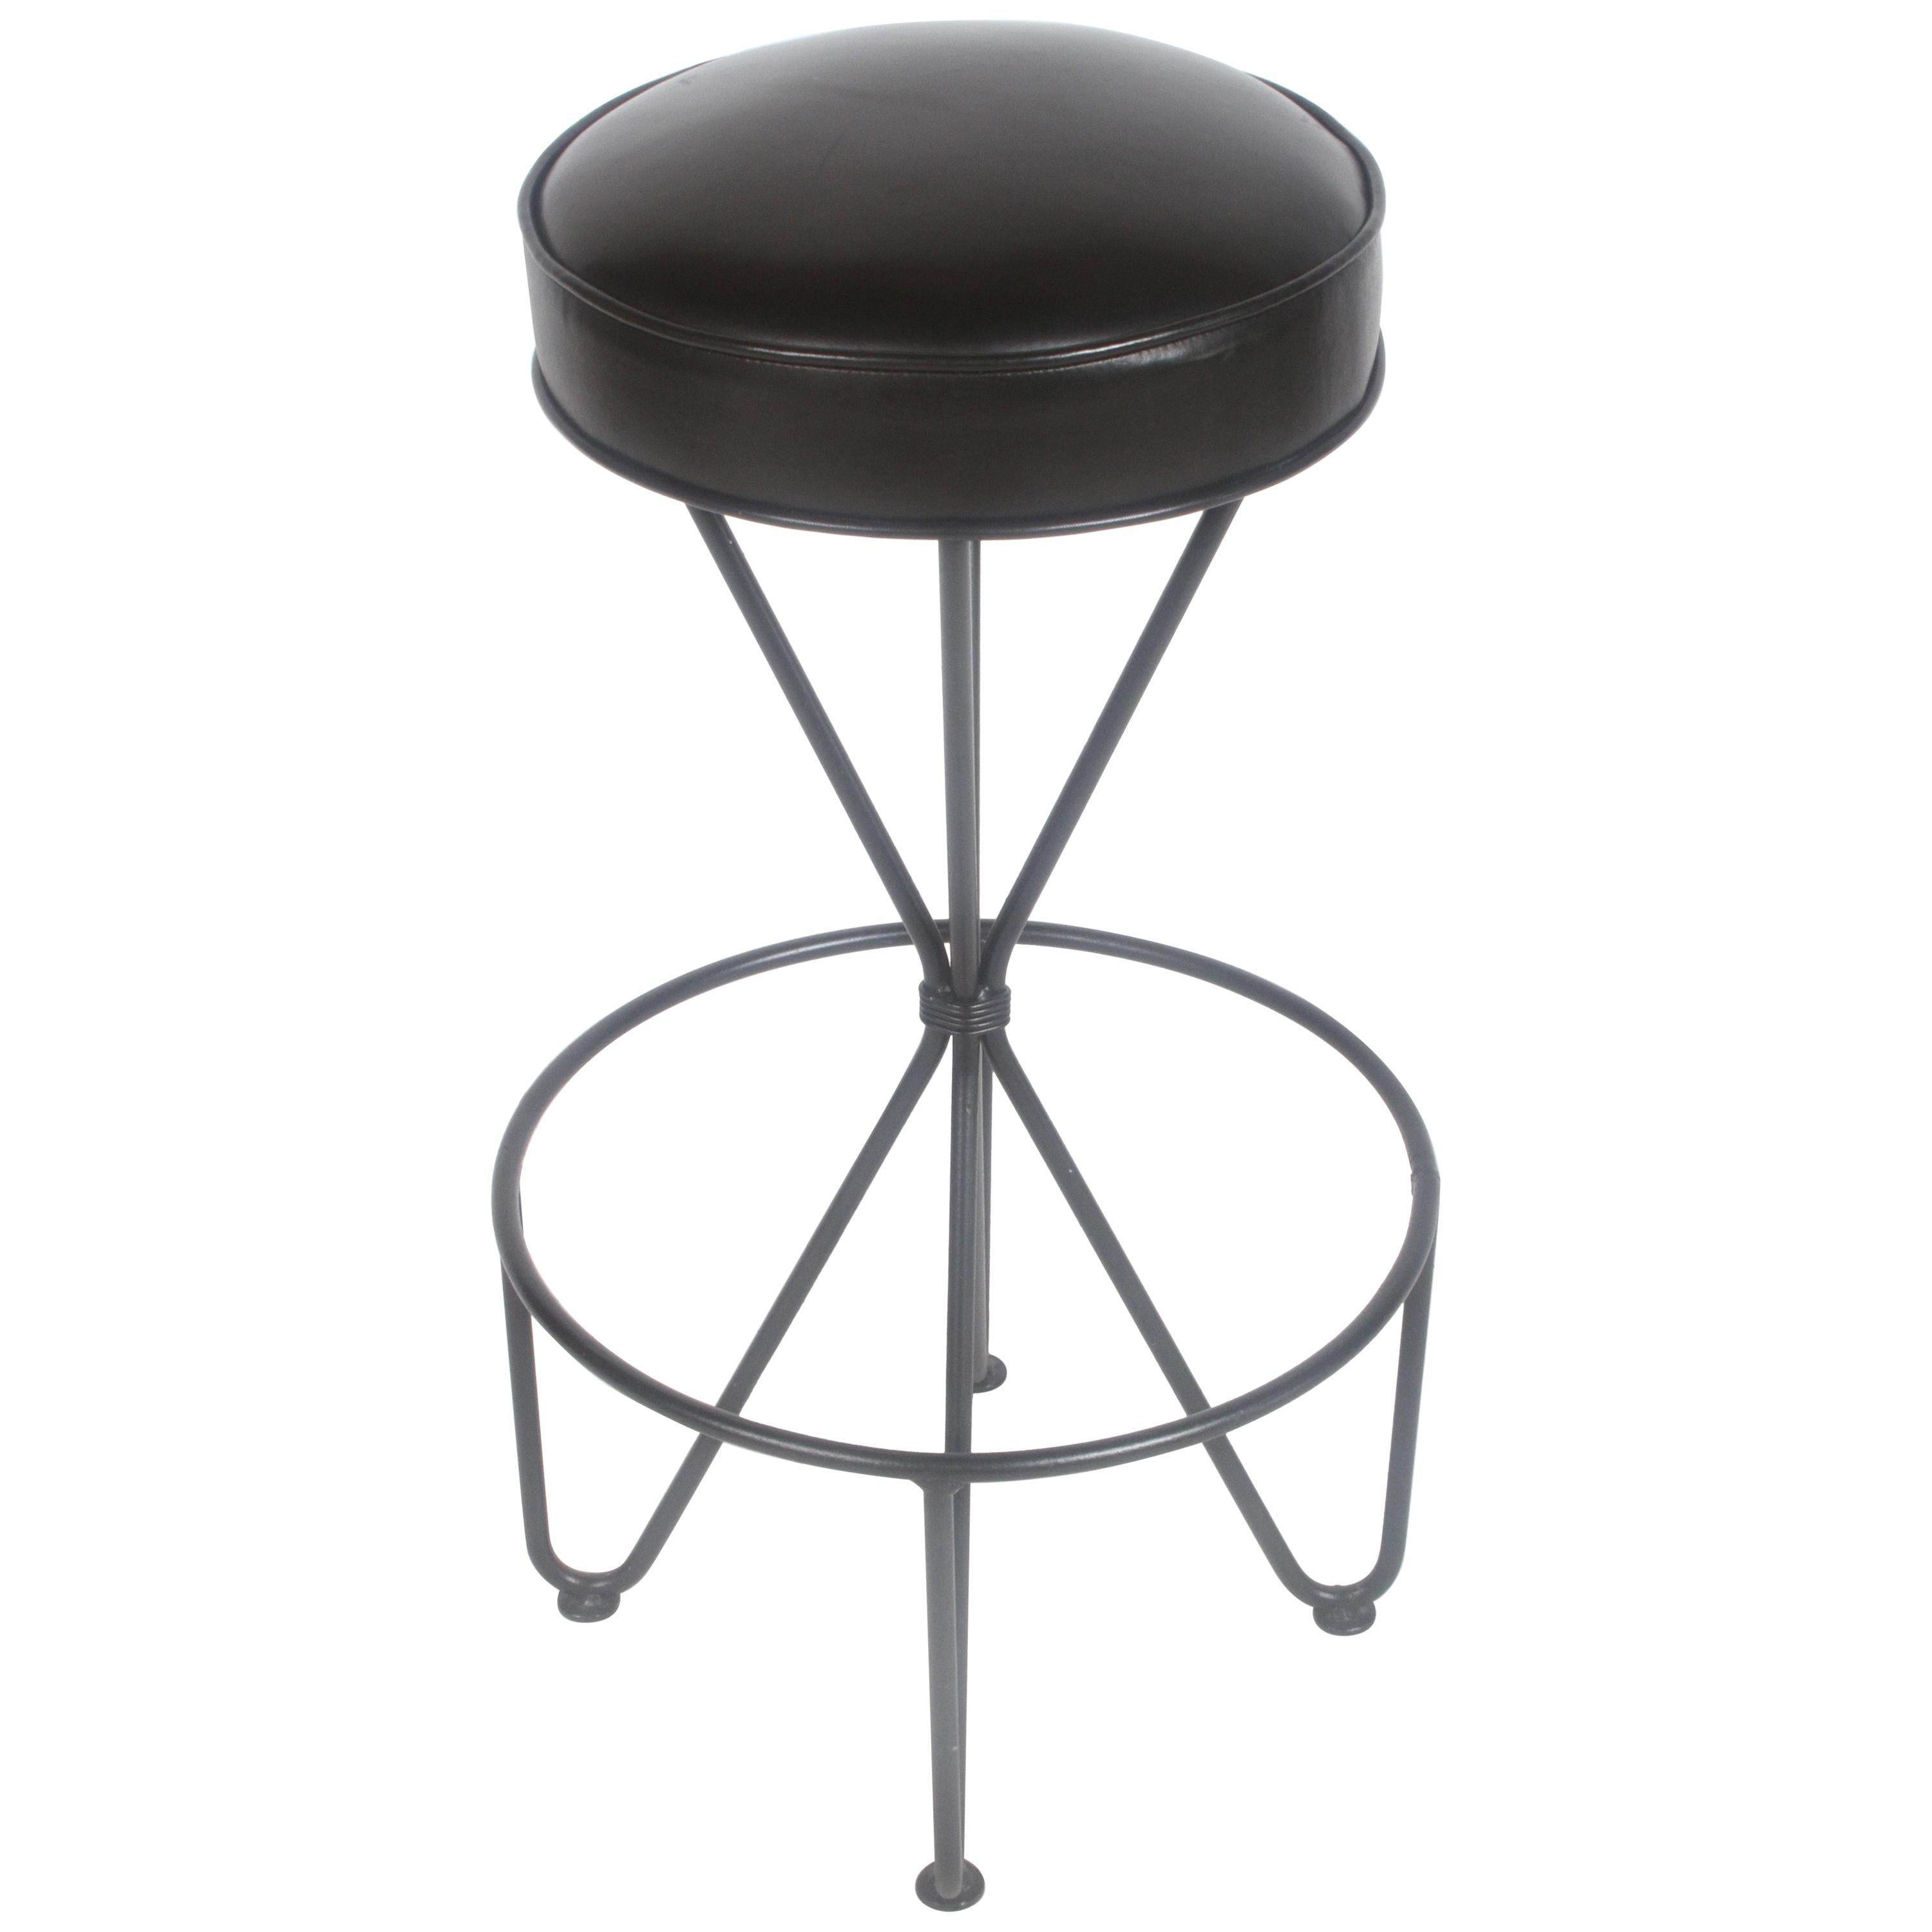 Superb Stool By Frederic Weinberg 1955 Andrewgaddart Wooden Chair Designs For Living Room Andrewgaddartcom